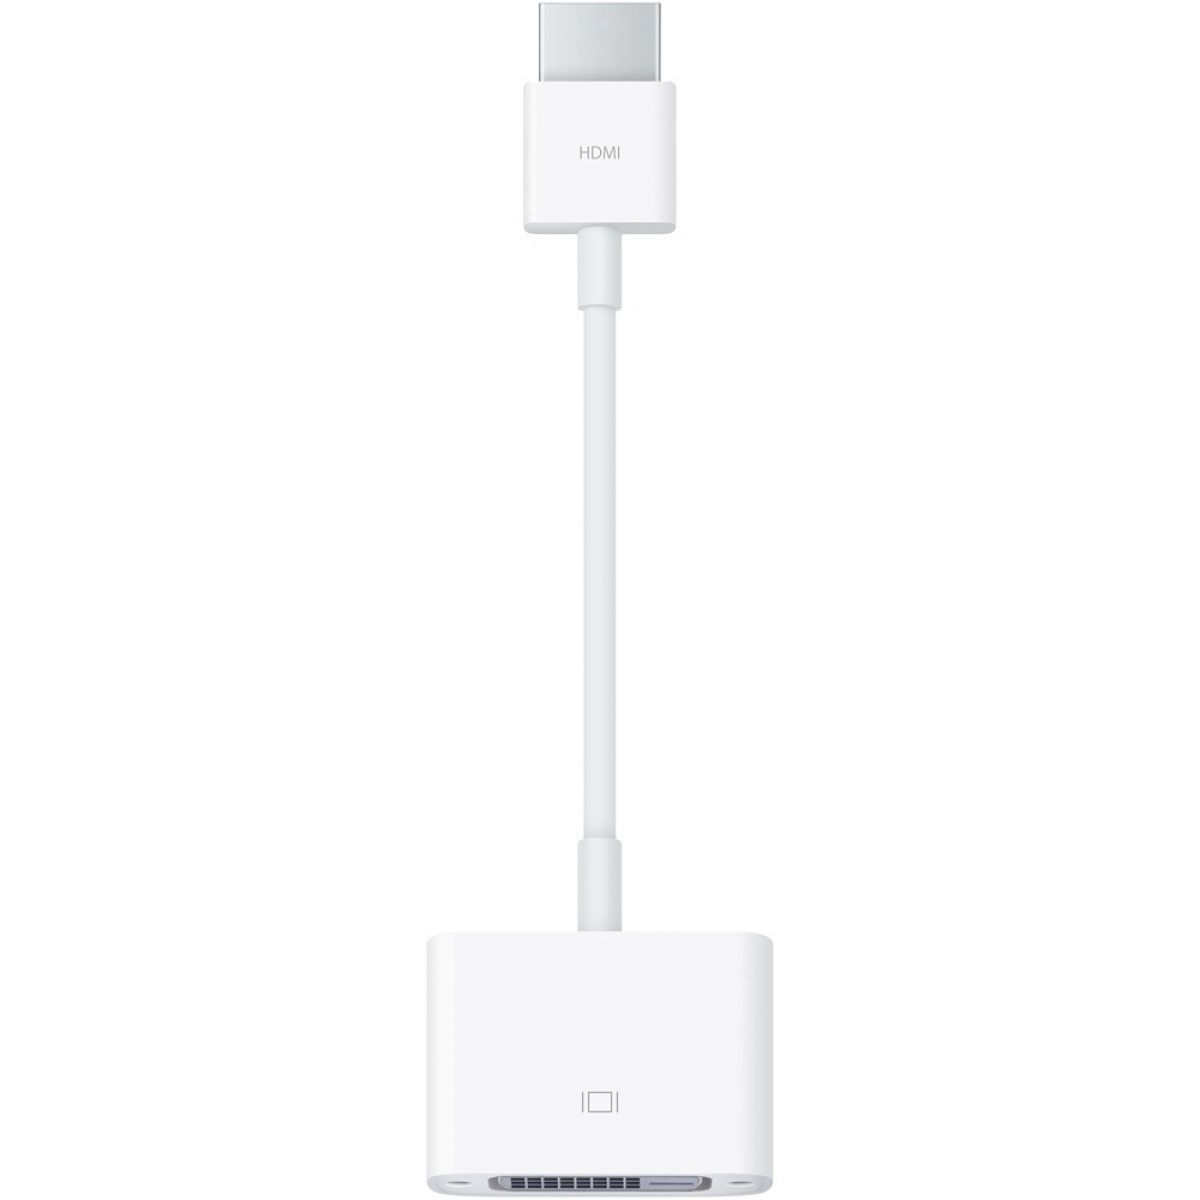 Apple Adapter Cable адаптер HDMI-DVI new 3 in1 thunderbolt mini displayport dp to hdmi dvi vga adapter display port cable for apple macbook pro mac book air